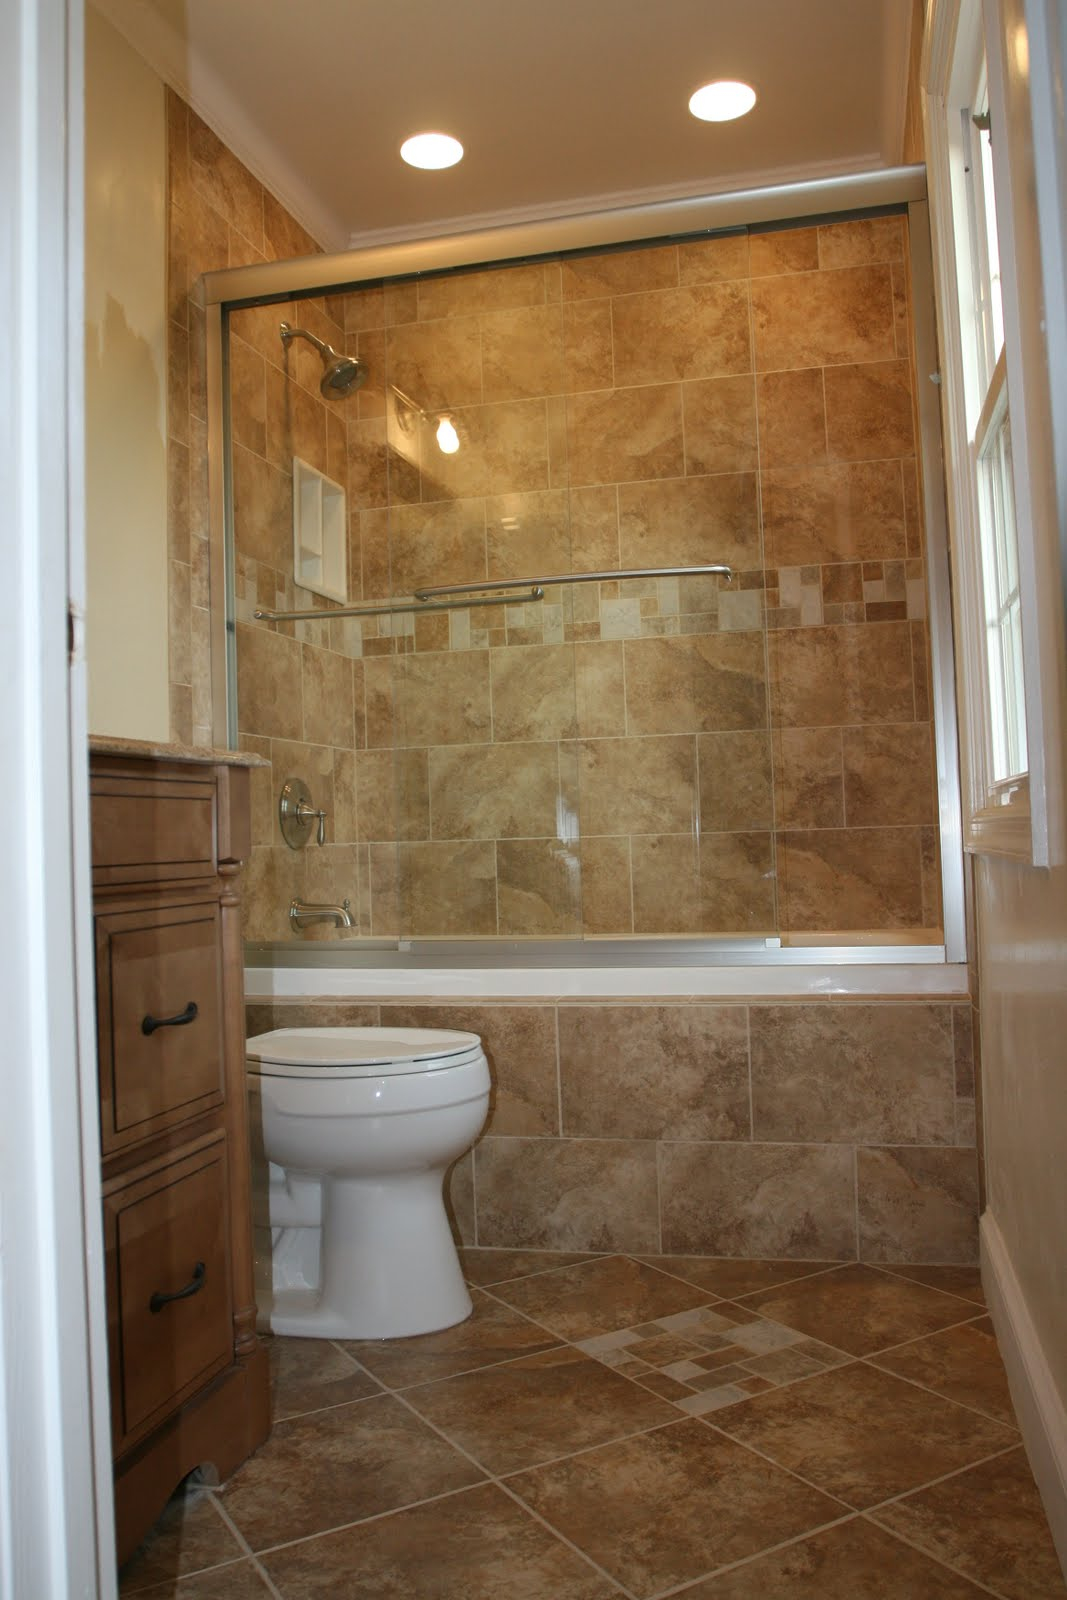 Bathroom remodeling design ideas tile shower niches november 2009 Tile a shower